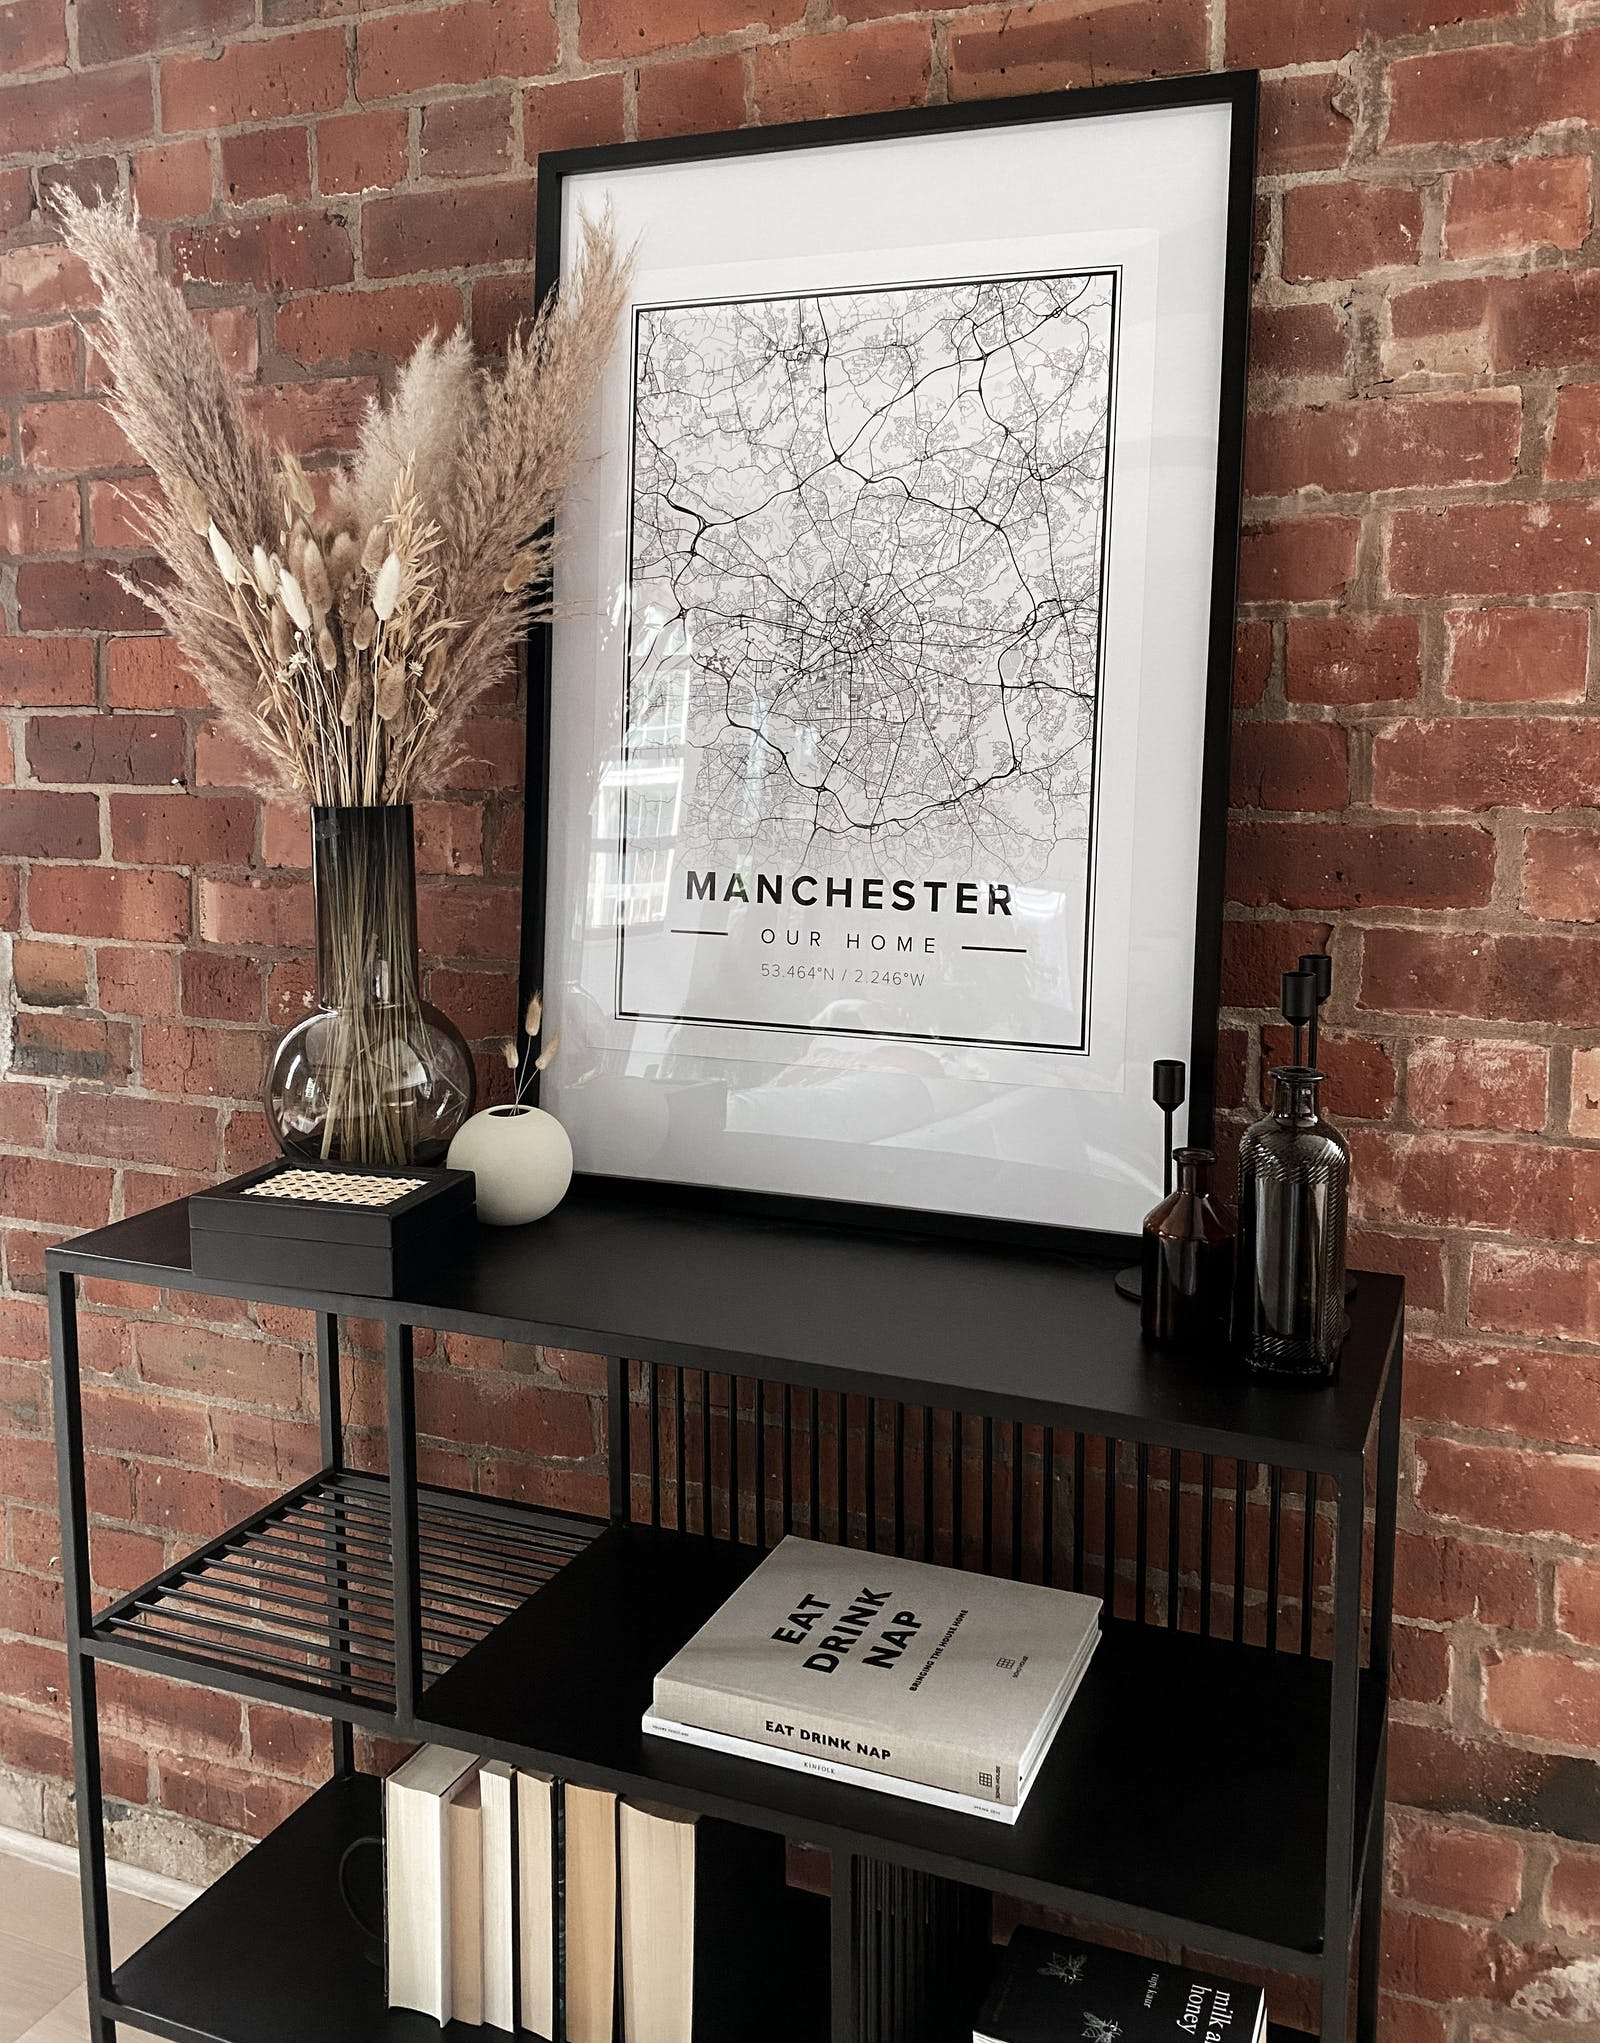 Exposed brick wall with a Manchester map poster and books